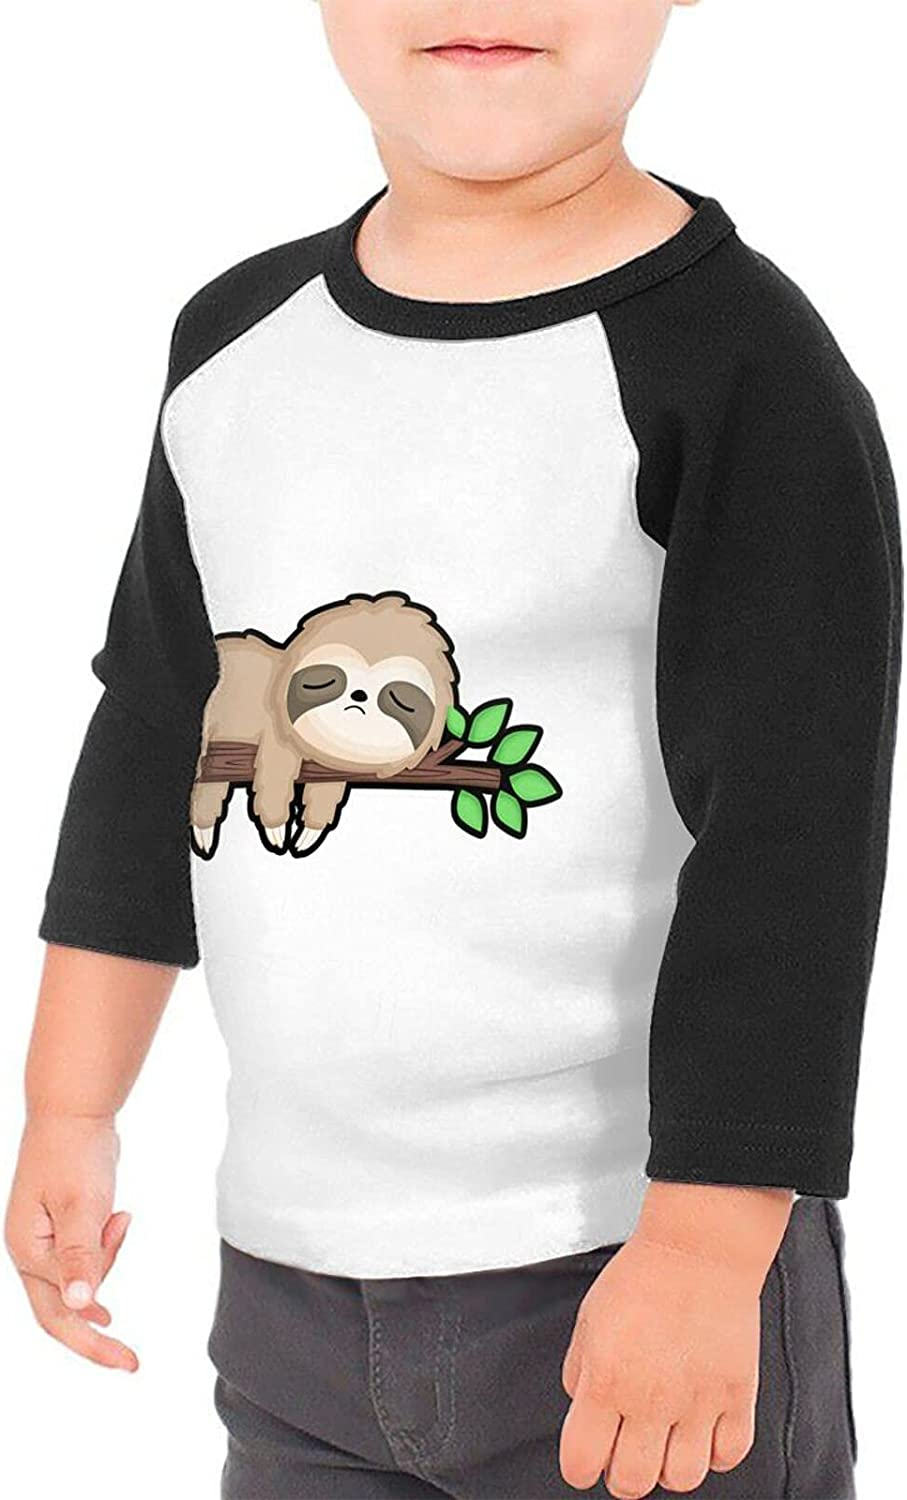 Lazy is A Strong Word I Like to Call It Selective Sloth T-Shirts Novelty for Kids Tees with Cool Designs